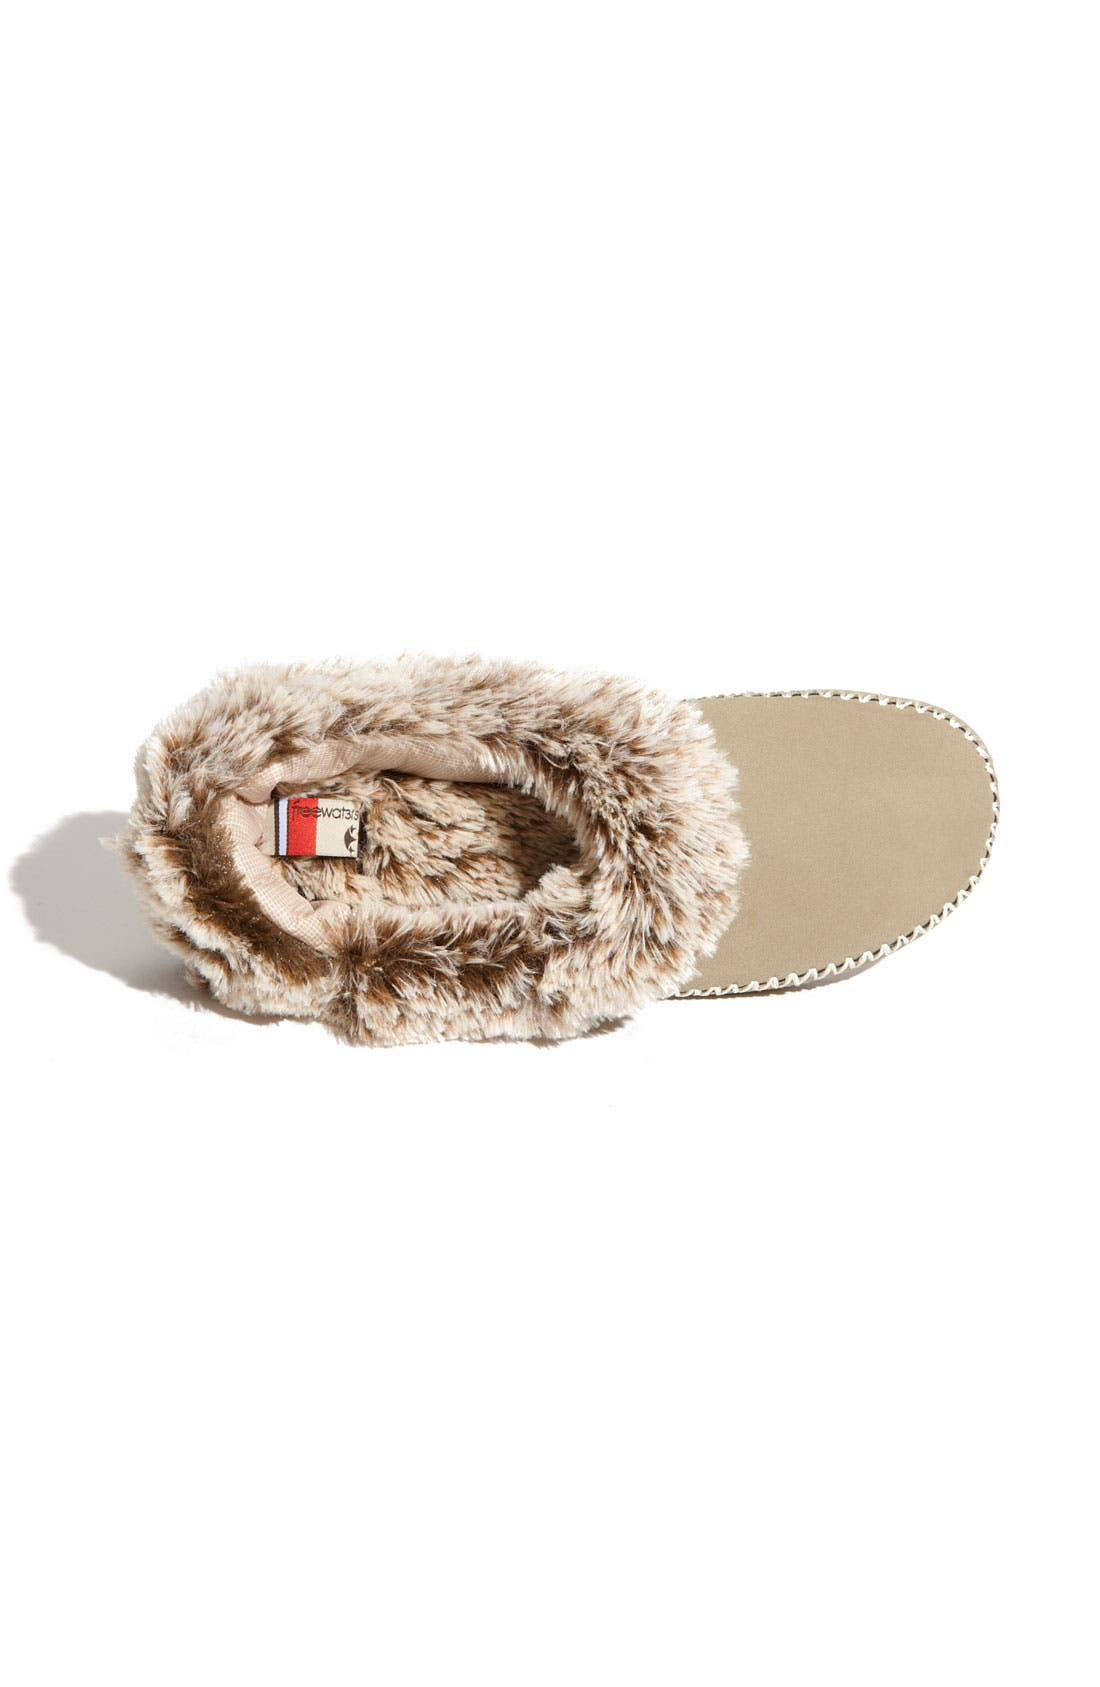 Alternate Image 3  - Freewaters 'Cloudnine' Slipper